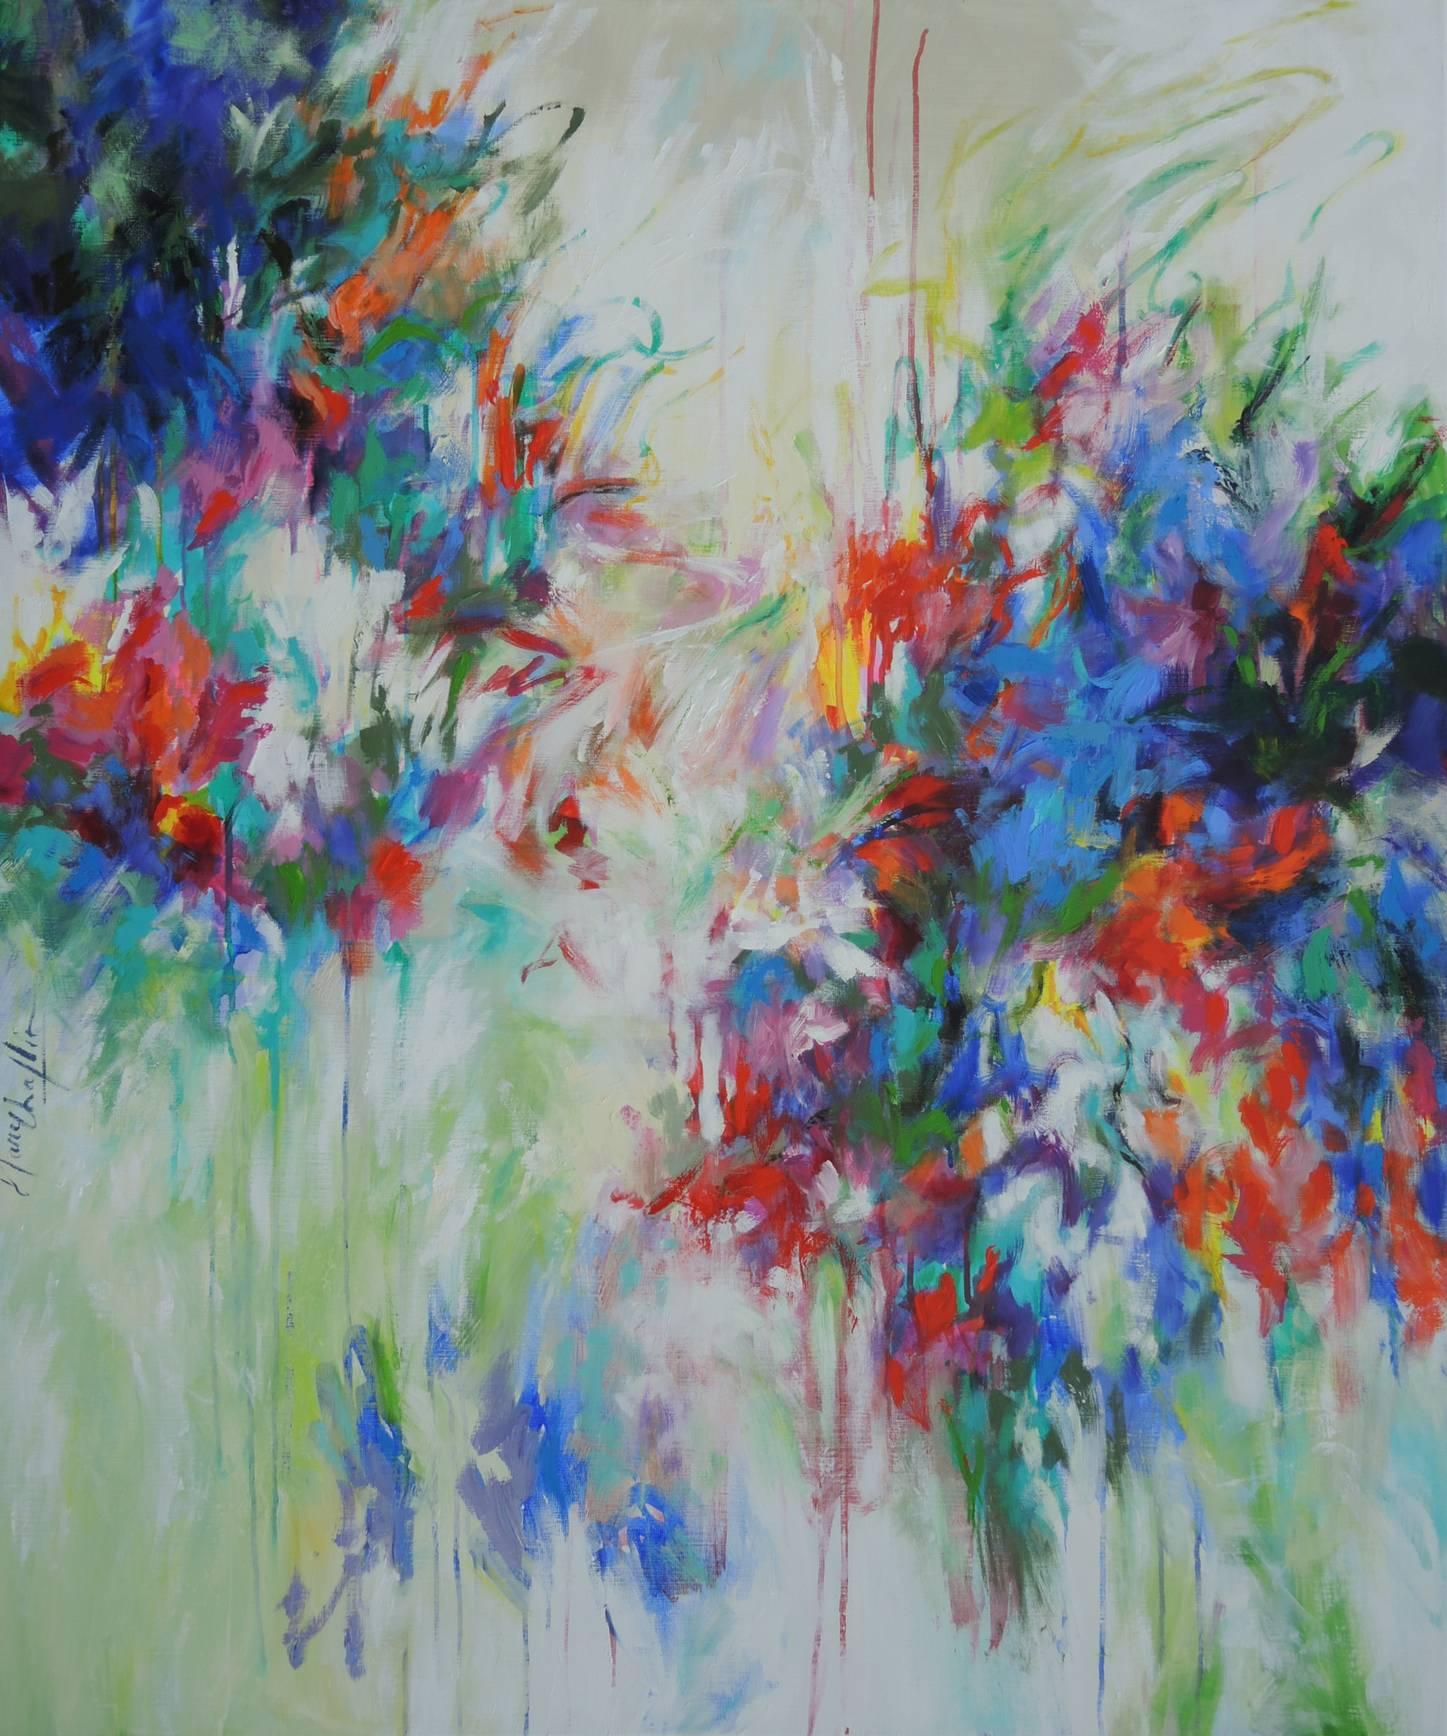 It Rained in May, Mary Chaplin, Bright Art, Abstract Impressionist Painting